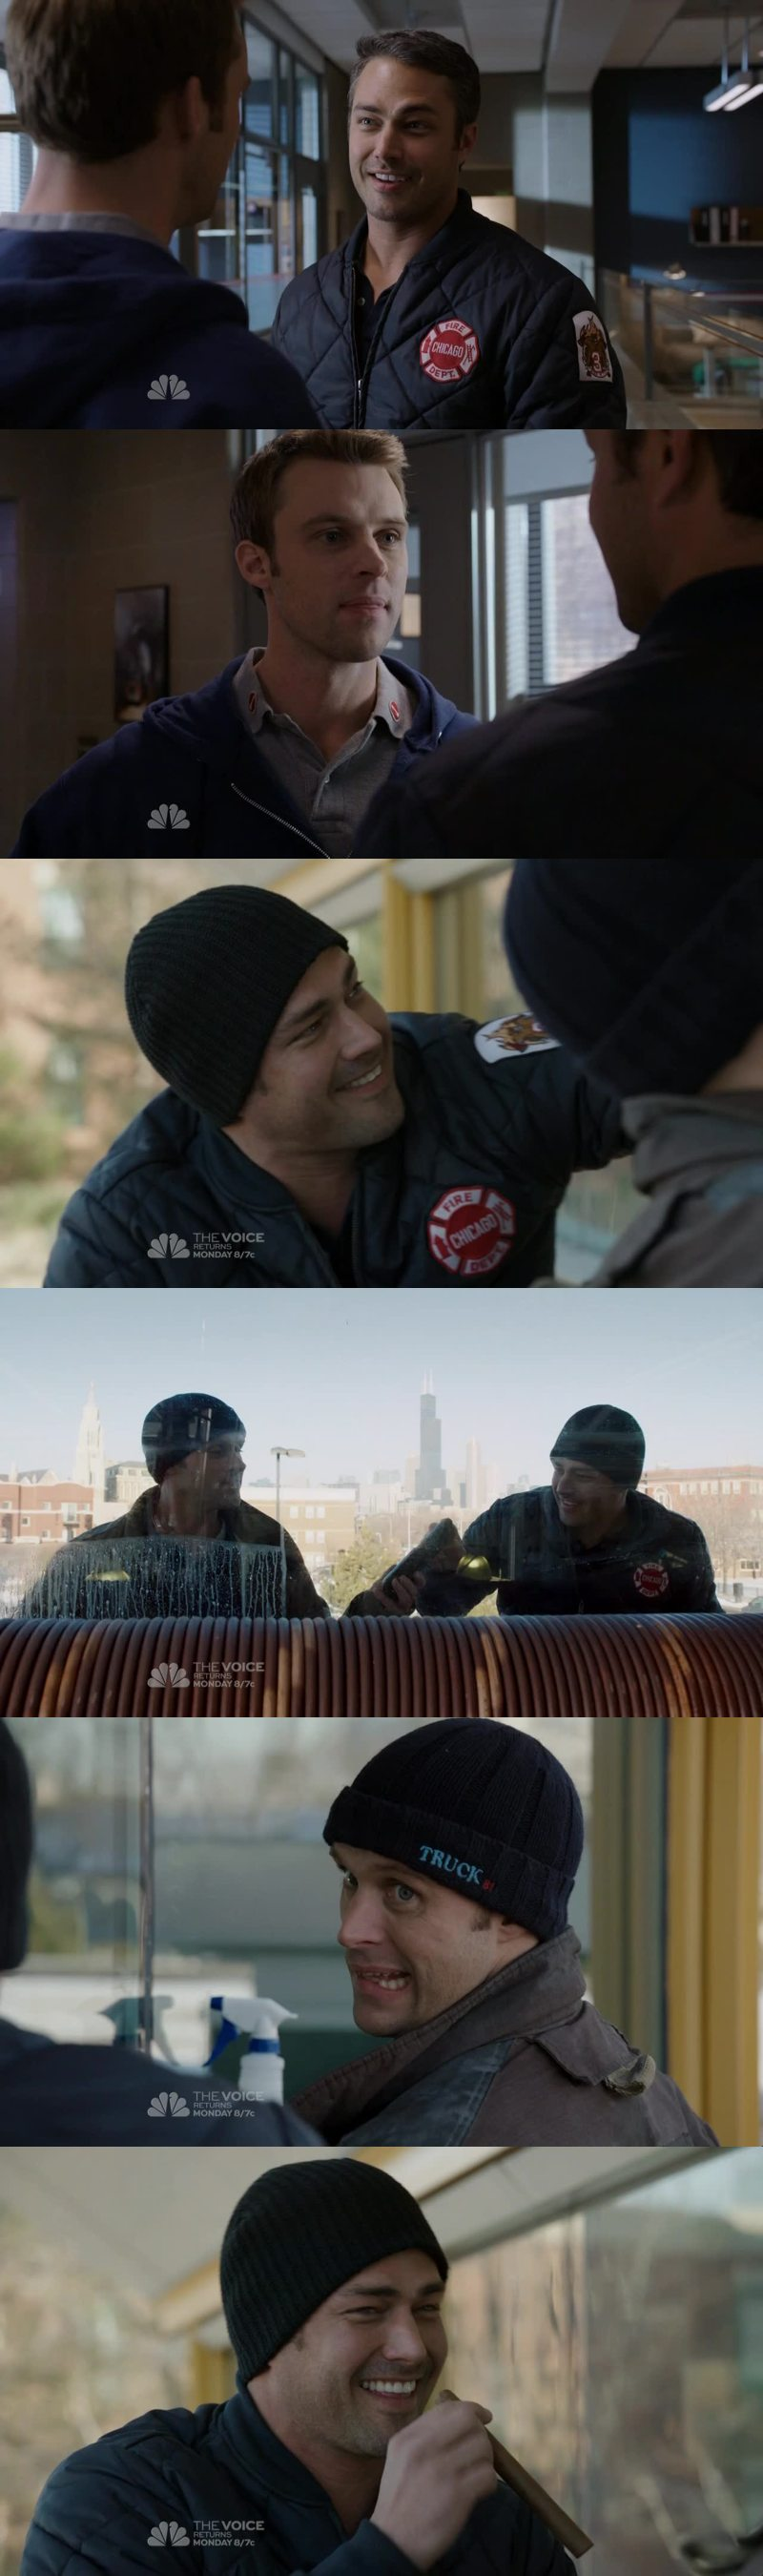 Ahahhaha this brotherhood between Casey and Severide is awesome!